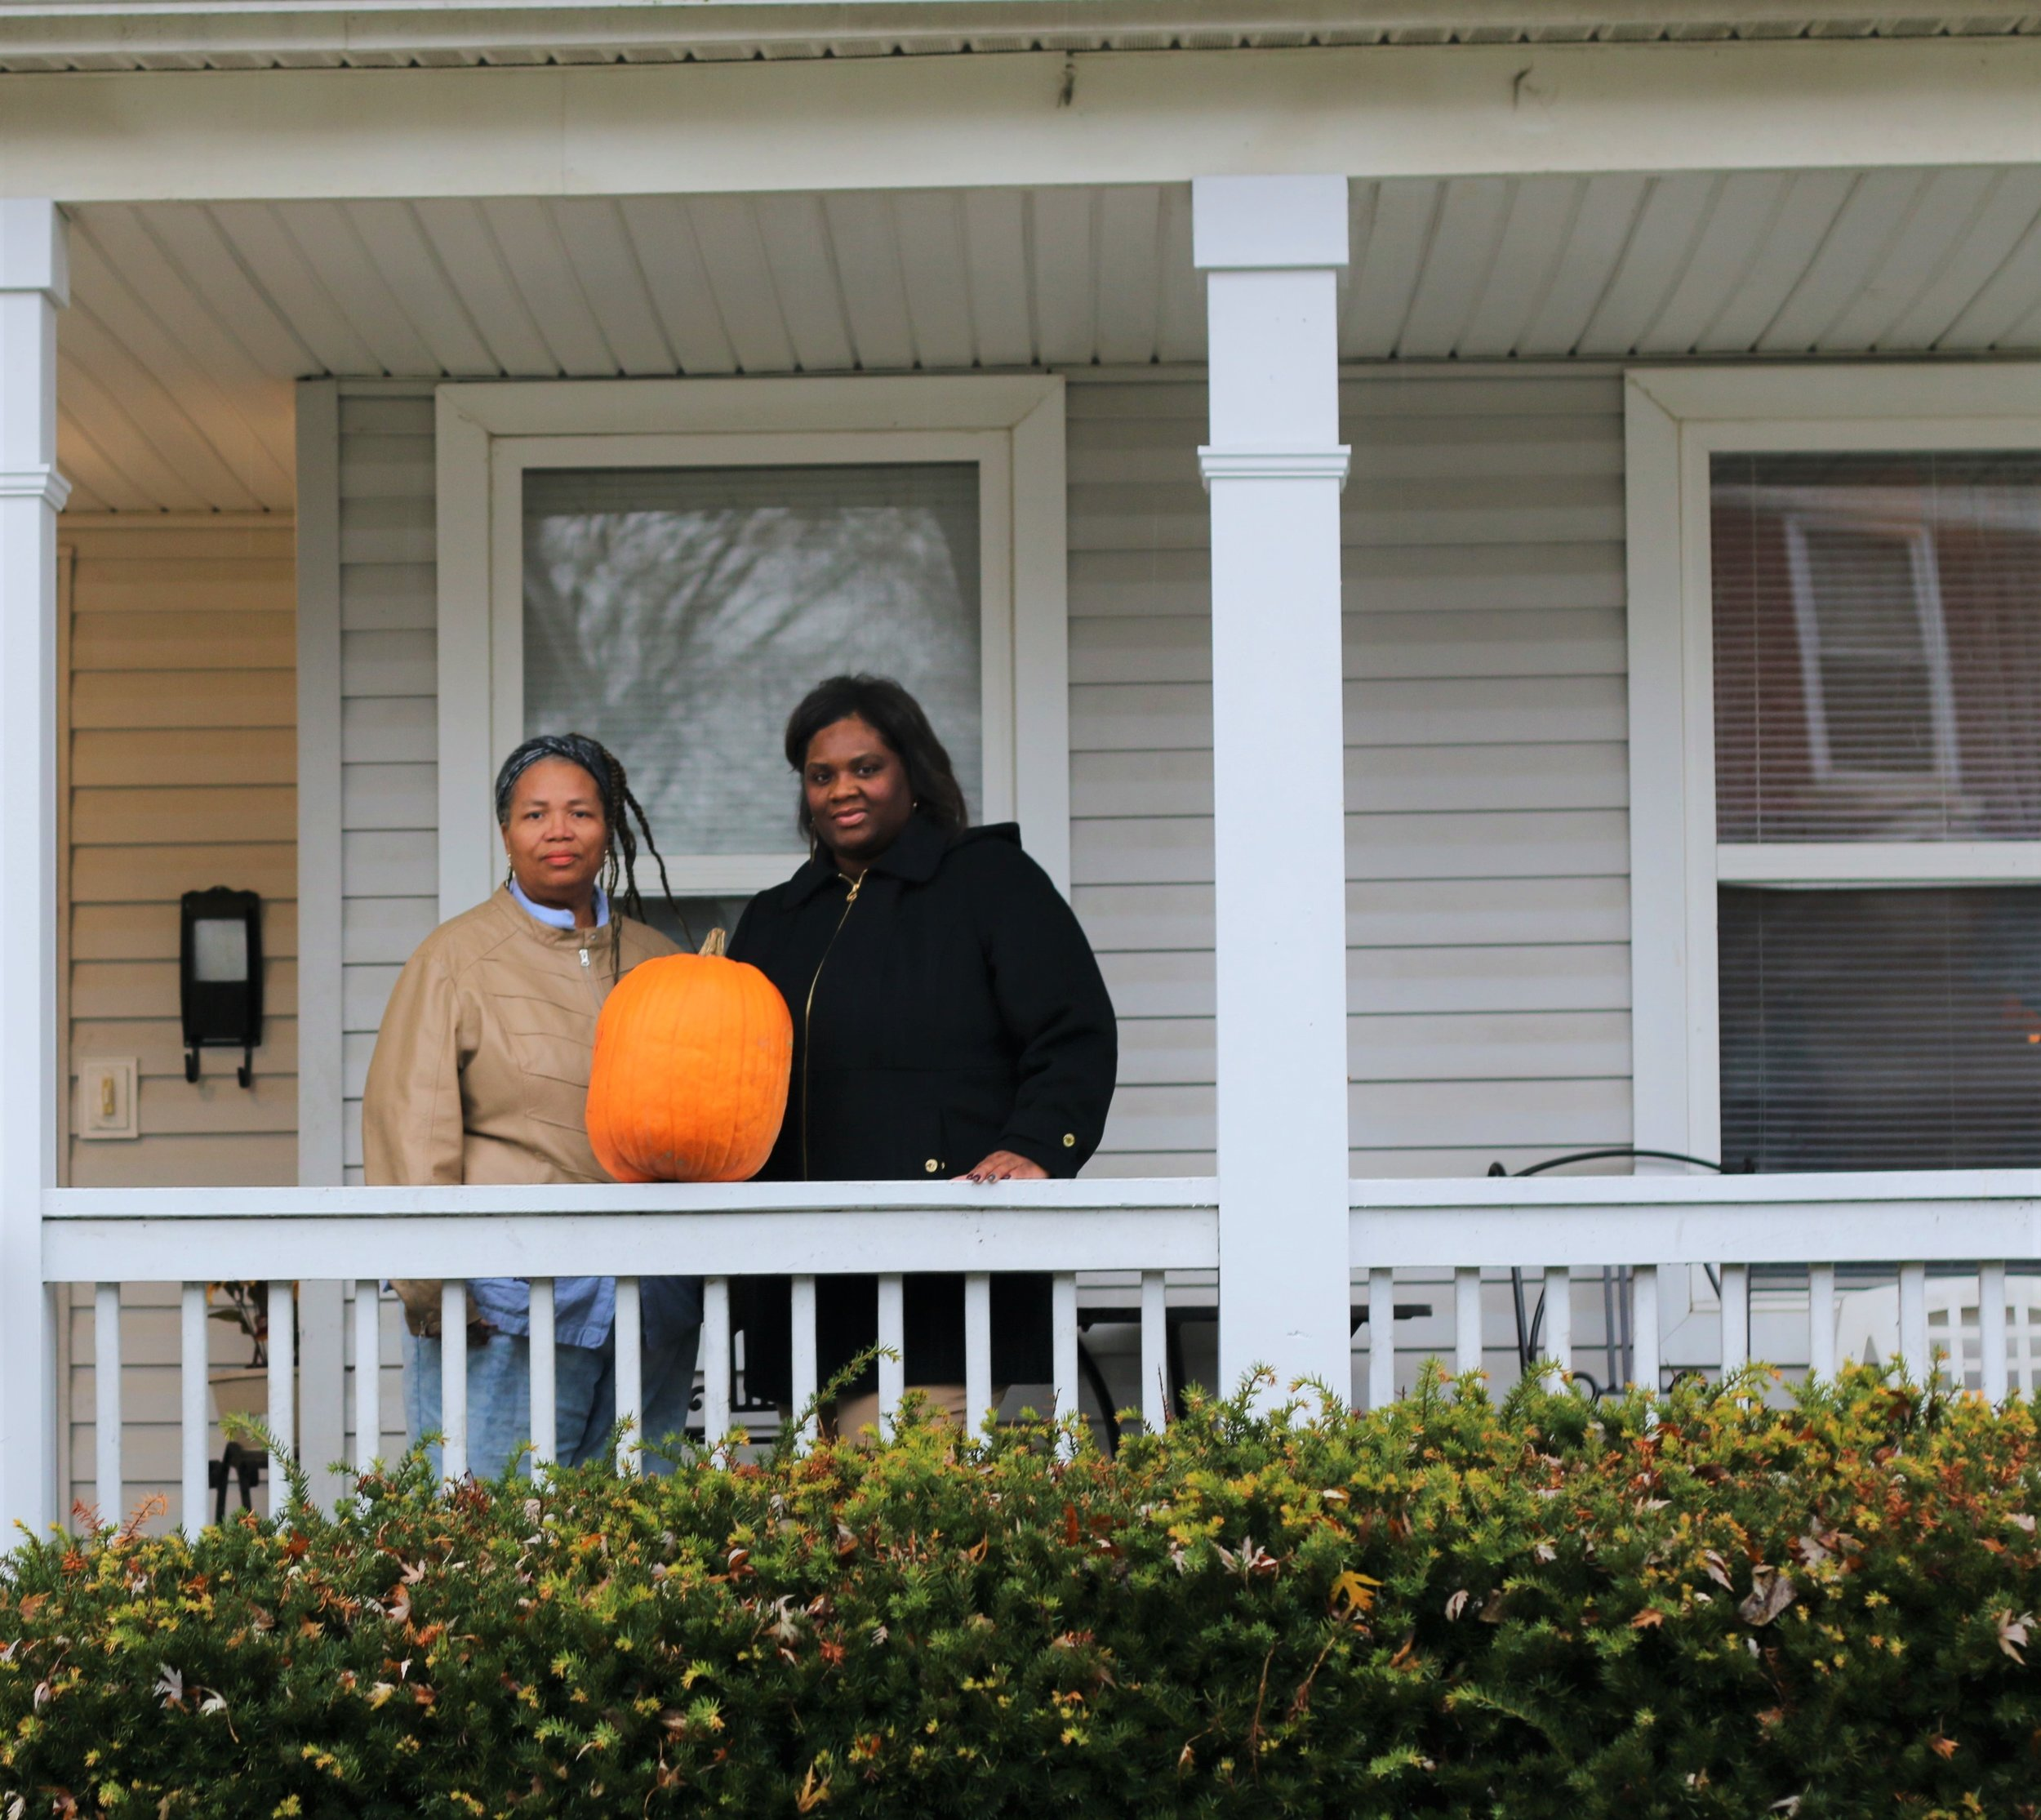 Essie and Kanica James on Essie's front porch on Ohio Avenue.